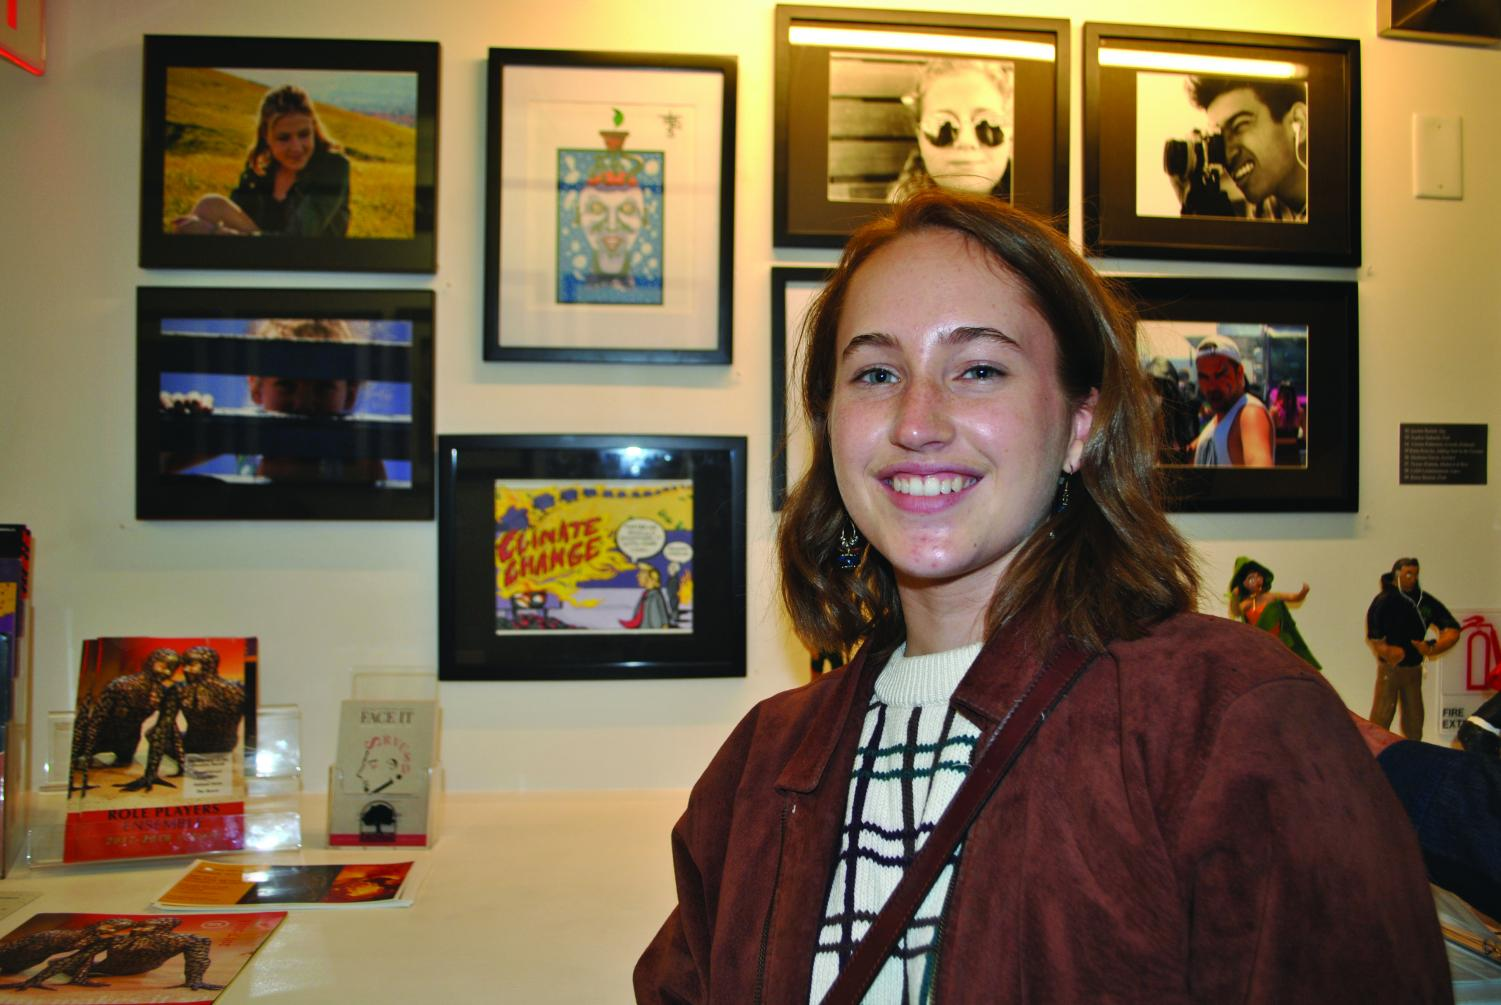 Senior Katie Kravitz displays her digital artwork at the Face It district art show.